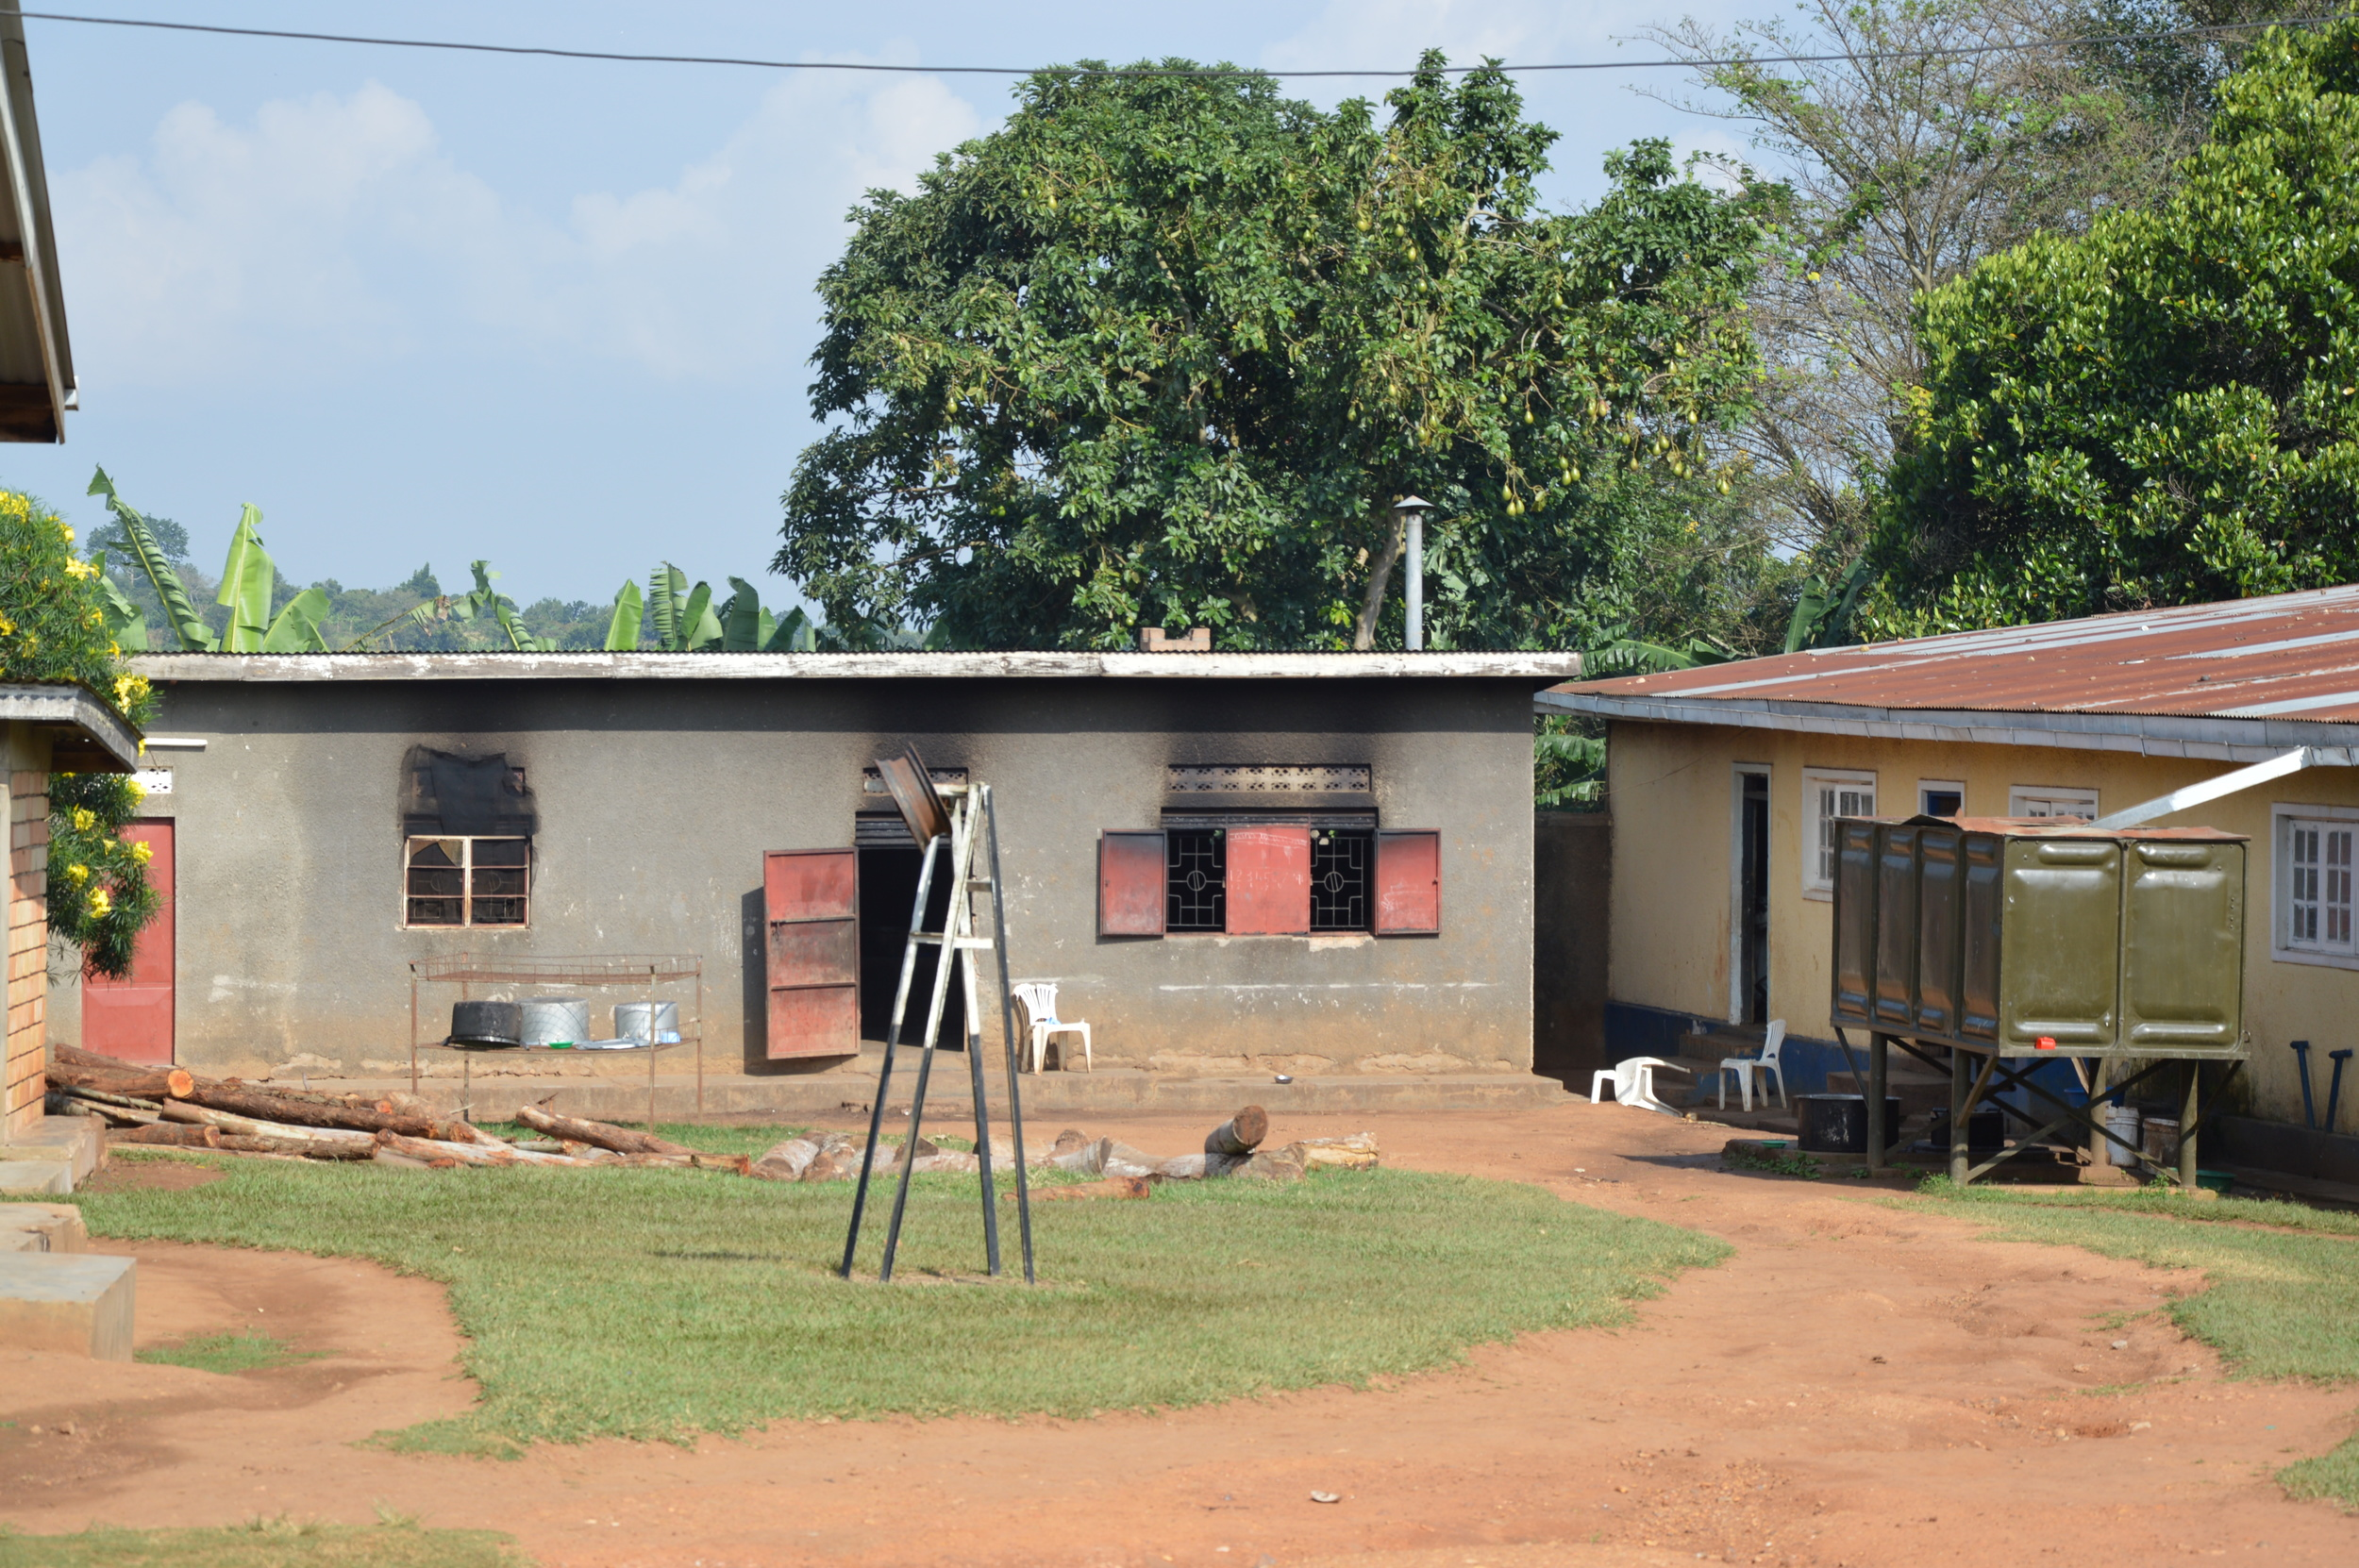 Some existing buildings used for classes